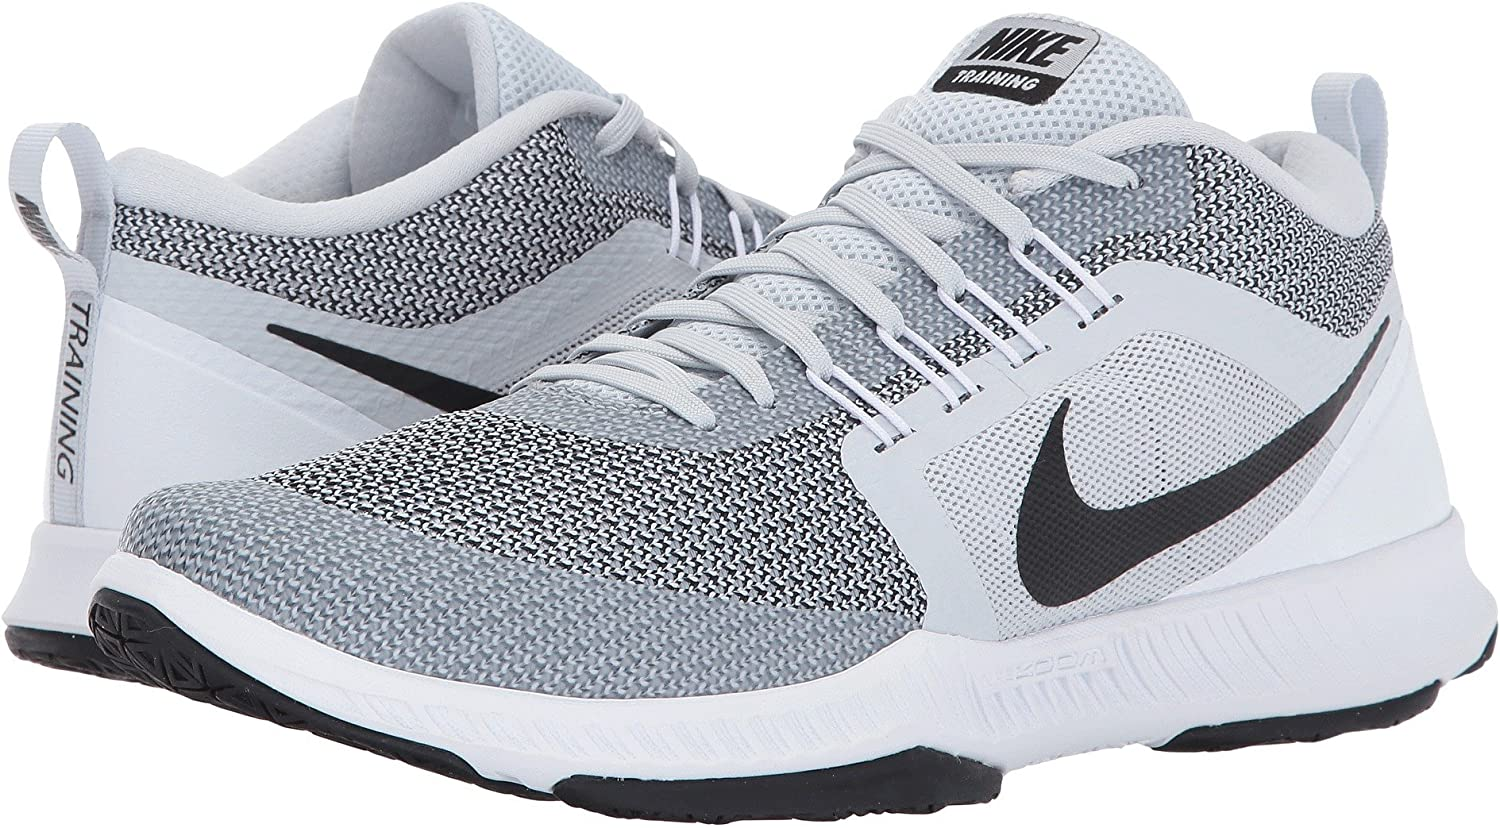 Men's Nike Zoom Domination Training shoes